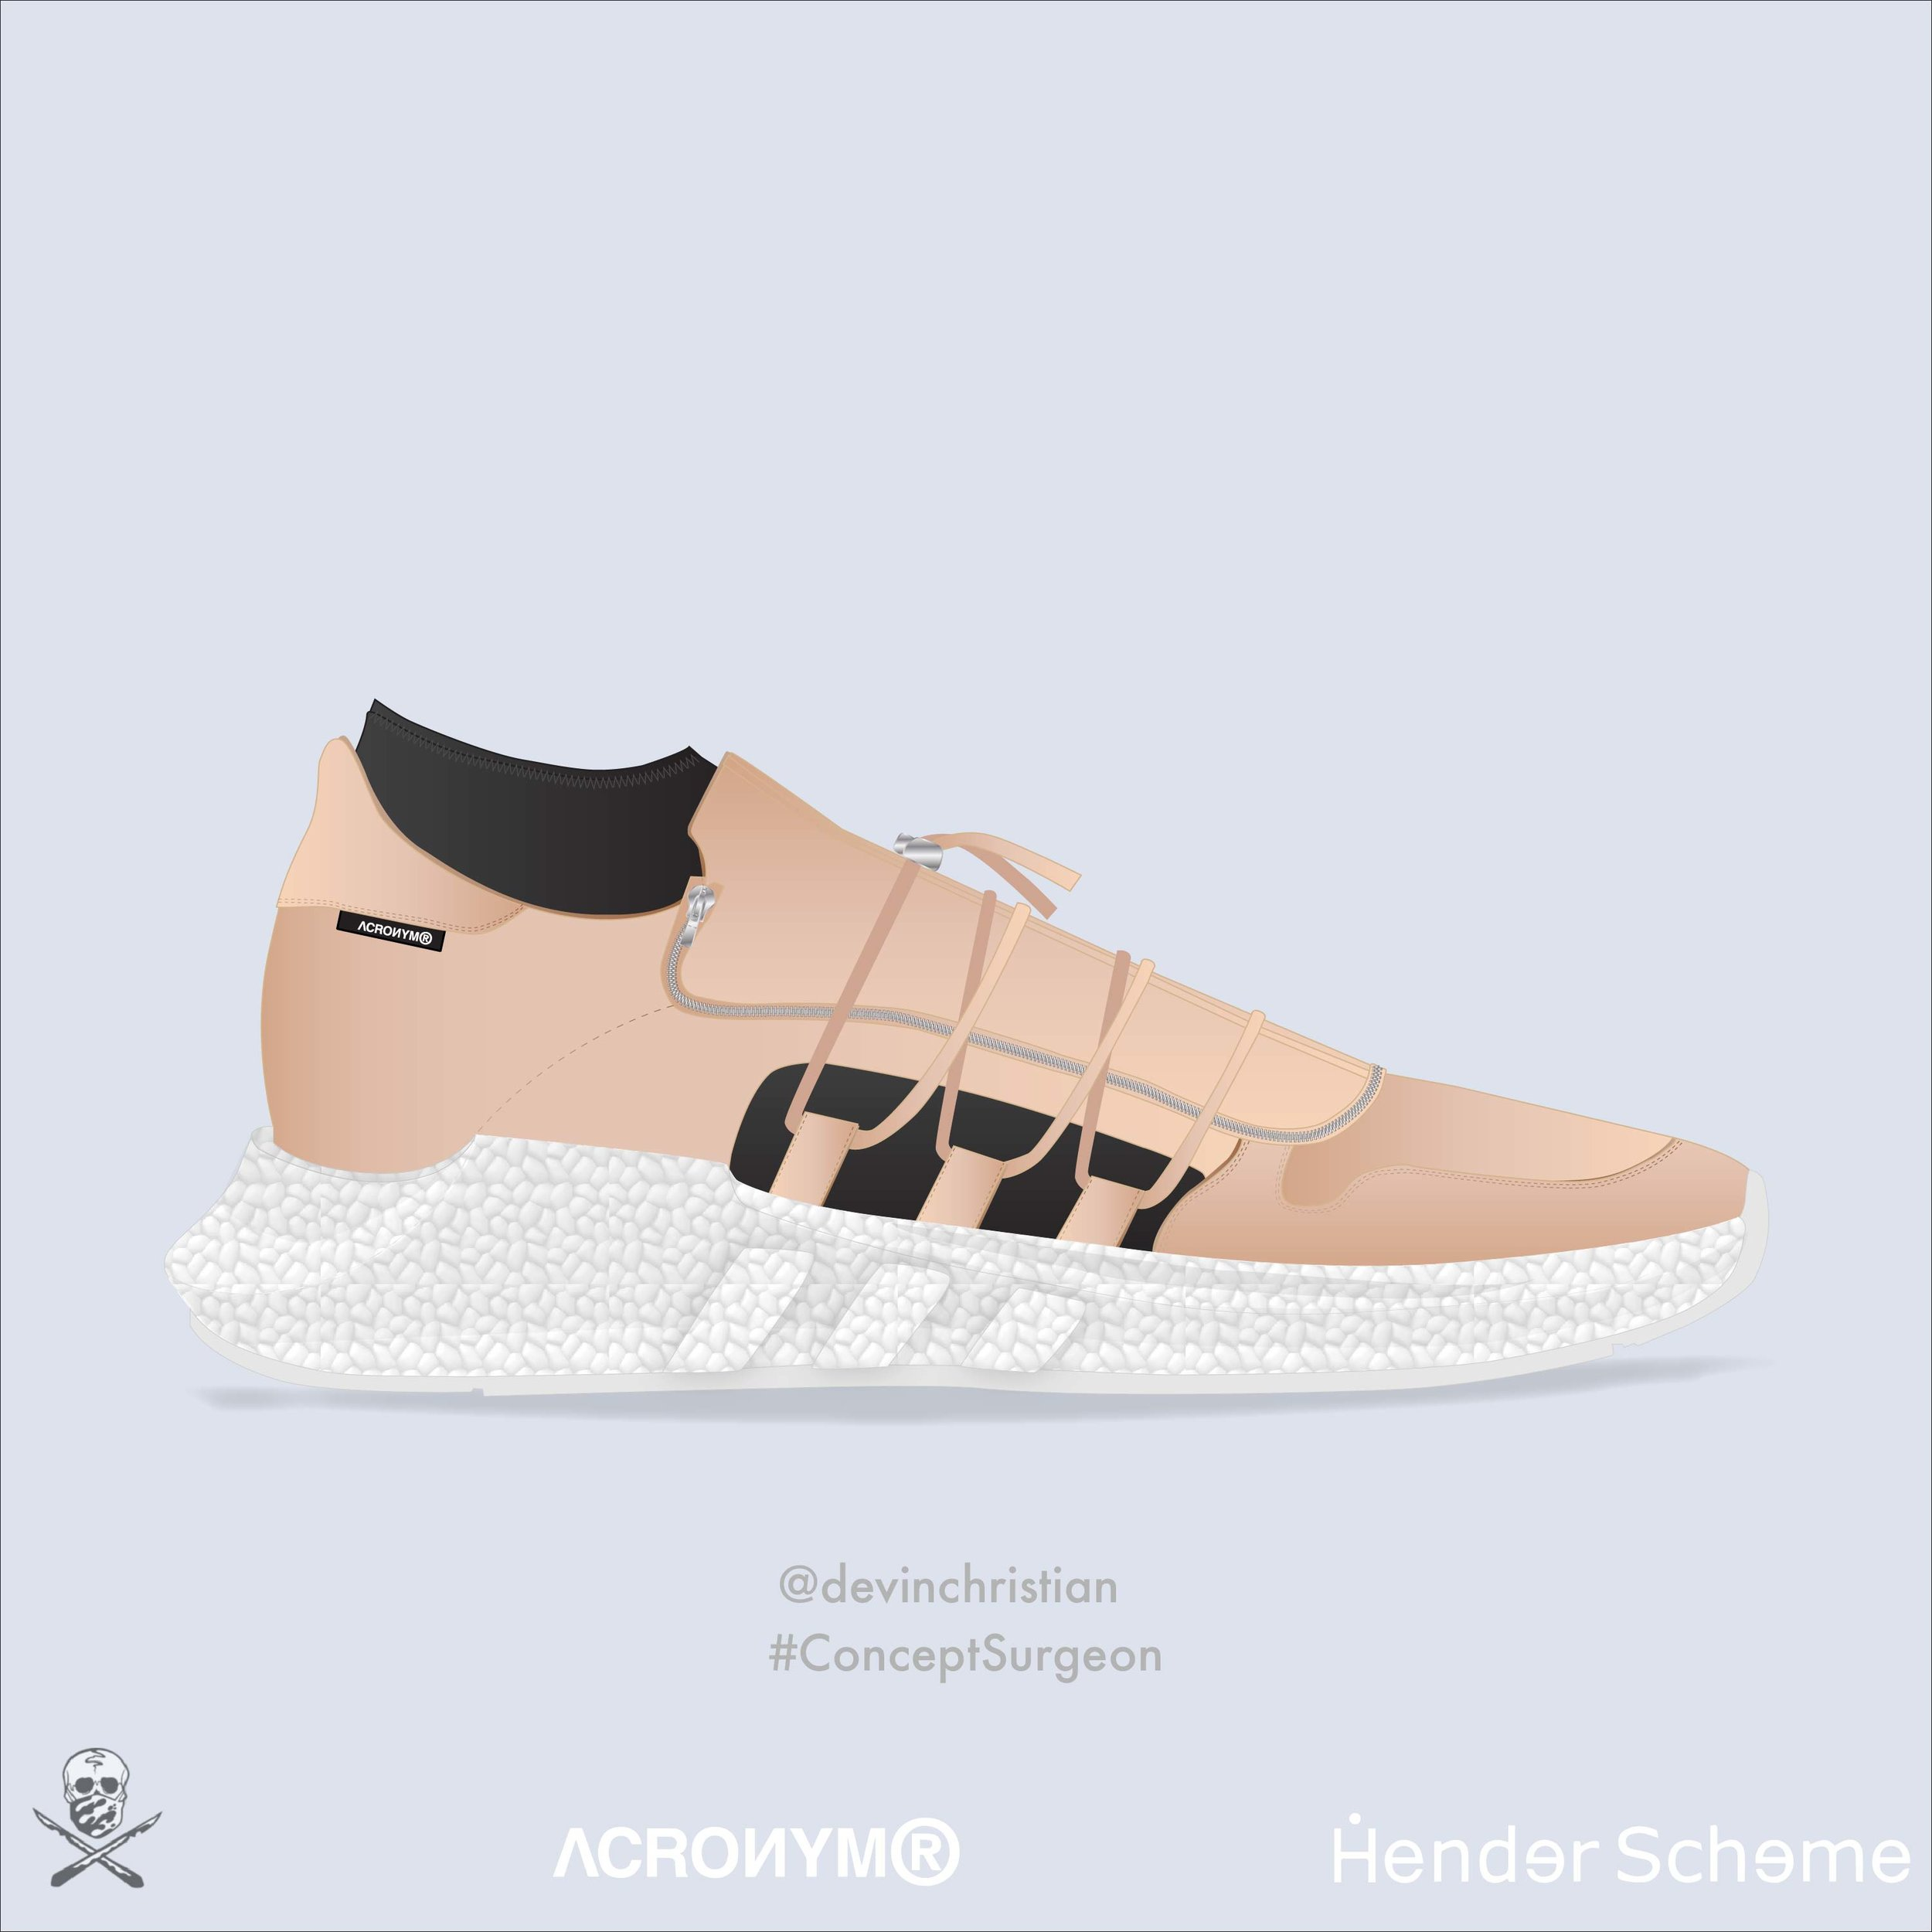 Shoe Surgeon HS Adidas Project-02.jpg